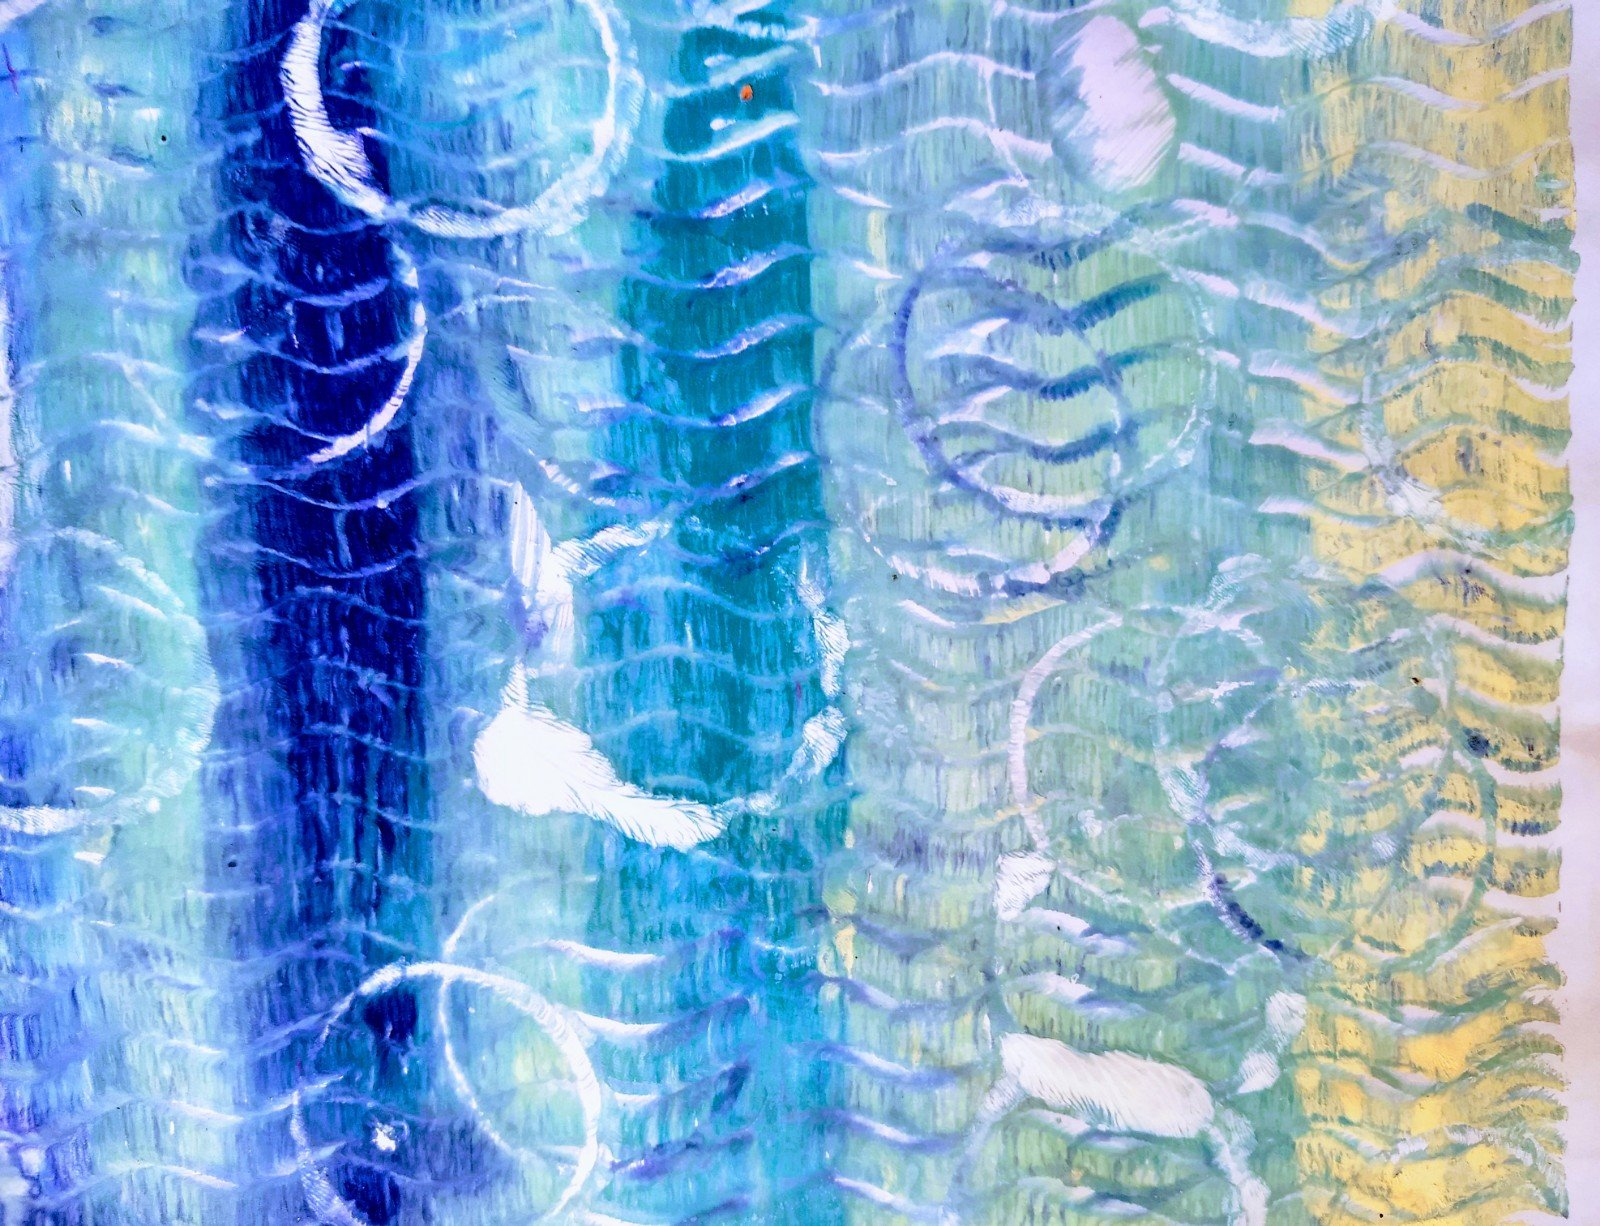 circles and waves in art journal; Art Journaling for Self Care, art therapy, painting with stencils, stamps, acrylic paints